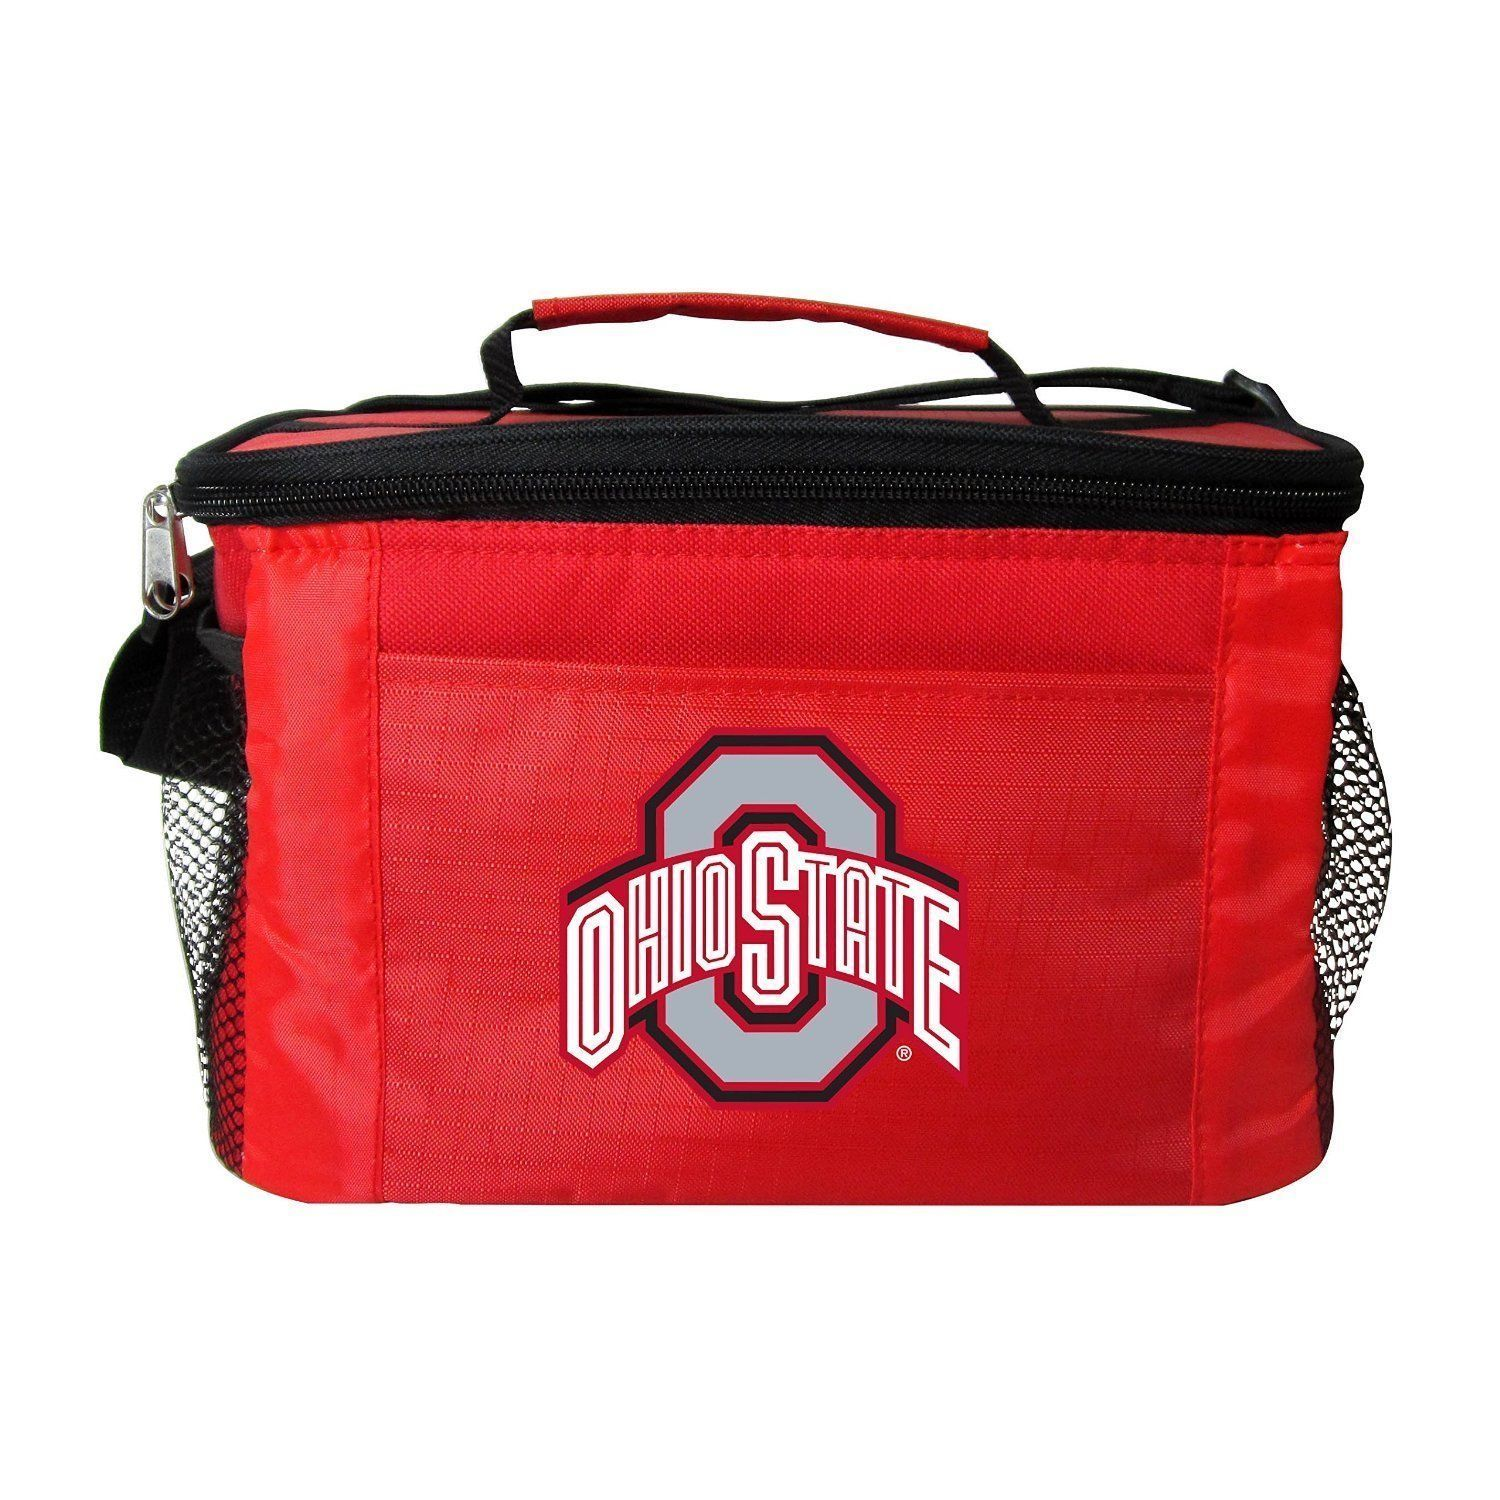 OHIO STATE BUCKEYES LUNCH TOTE 6 PK BEER SODA TEAM LOGO KOOLER BAG NCAA